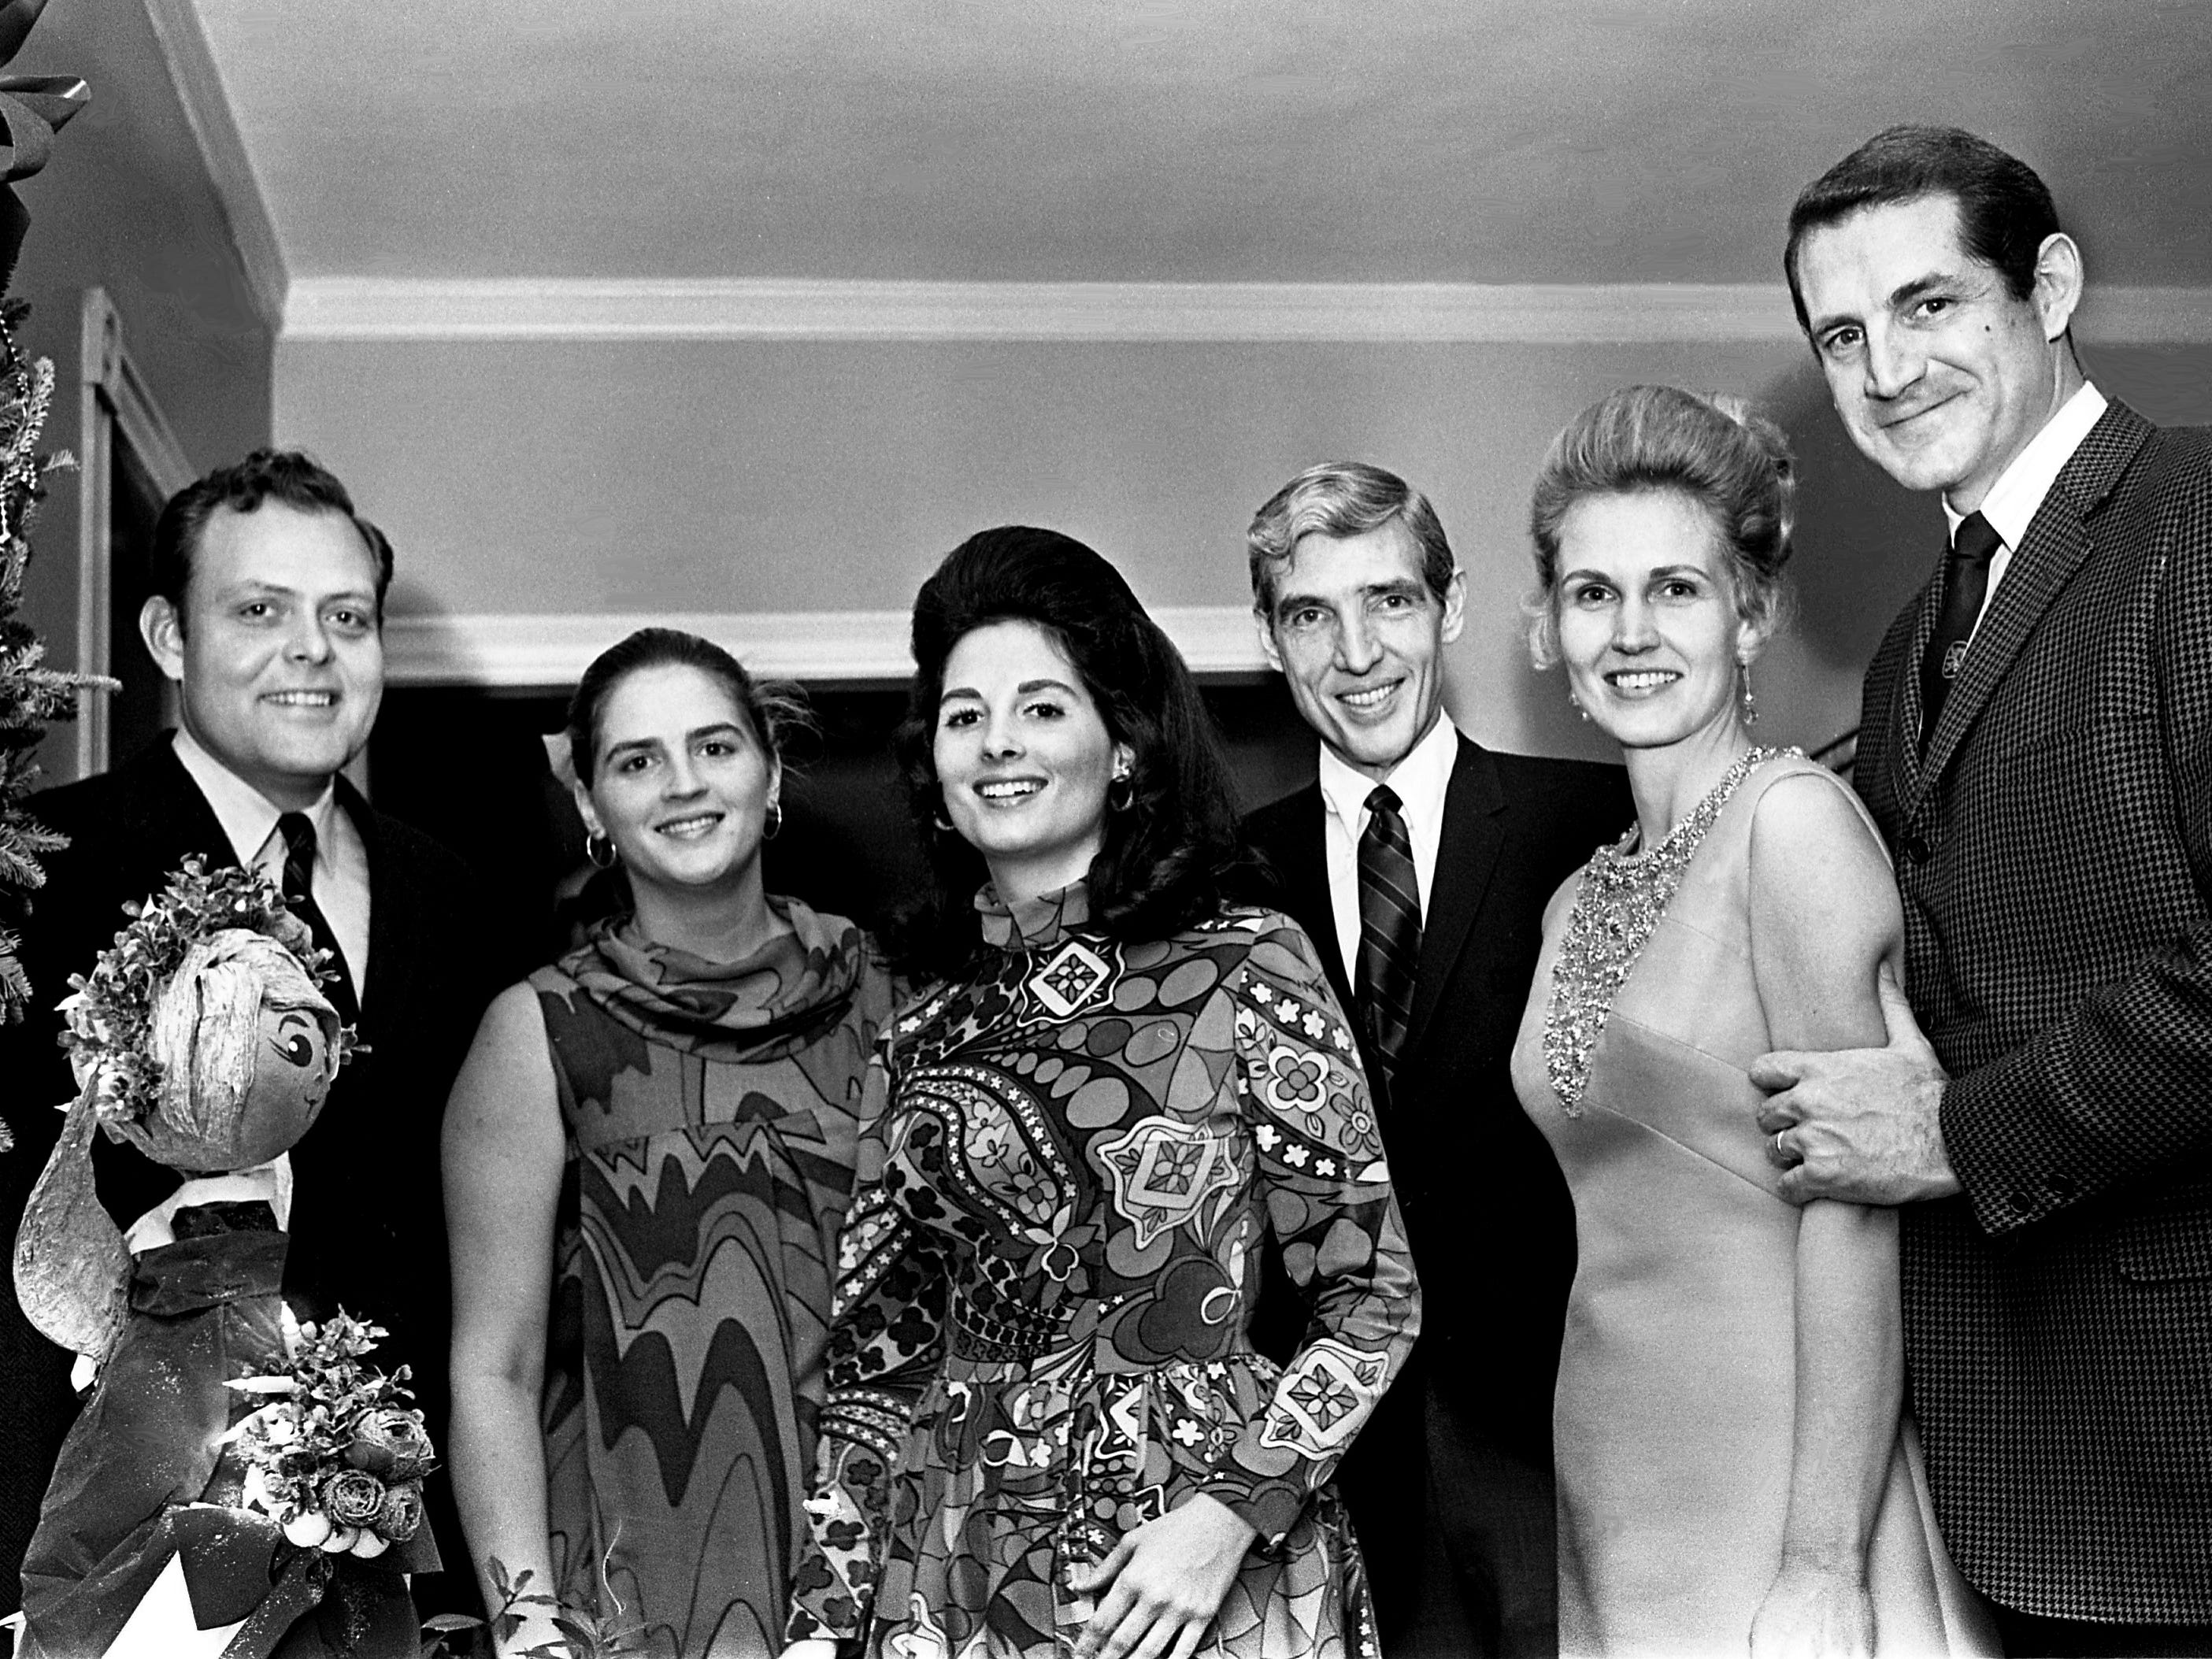 Host Tish Hooker, third from left, shares a moment with guests Mr. and Mrs. Gil Merritt, left, Thomas W. Steele, and Mrs. and Mr. Stirton Oman as she and her husband, John Jay Hooker Jr., have a holiday party in the Belle Meade apartment of his mother, Mrs. Darthula Hooker, on Dec. 22, 1968. The Hookers are staying with his mother while their home on Chickering Lane is under construction.